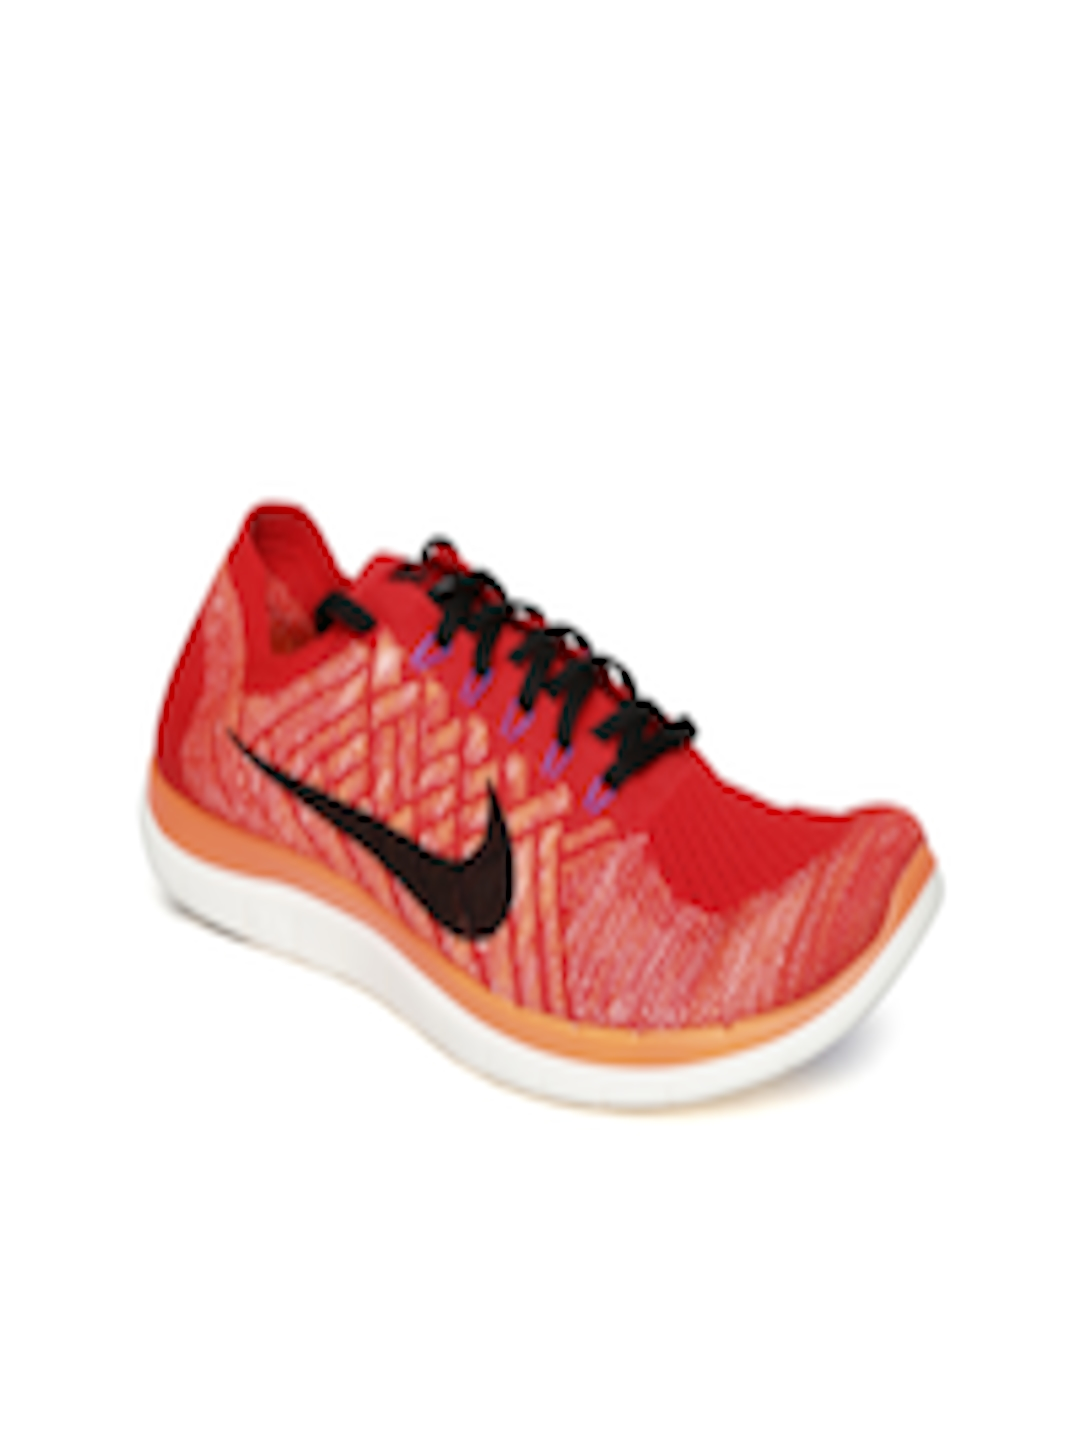 fea9f4dd0e17 Buy Nike Men Red Free 4.0 Flyknit Running Shoes - Sports Shoes for Men  1109832